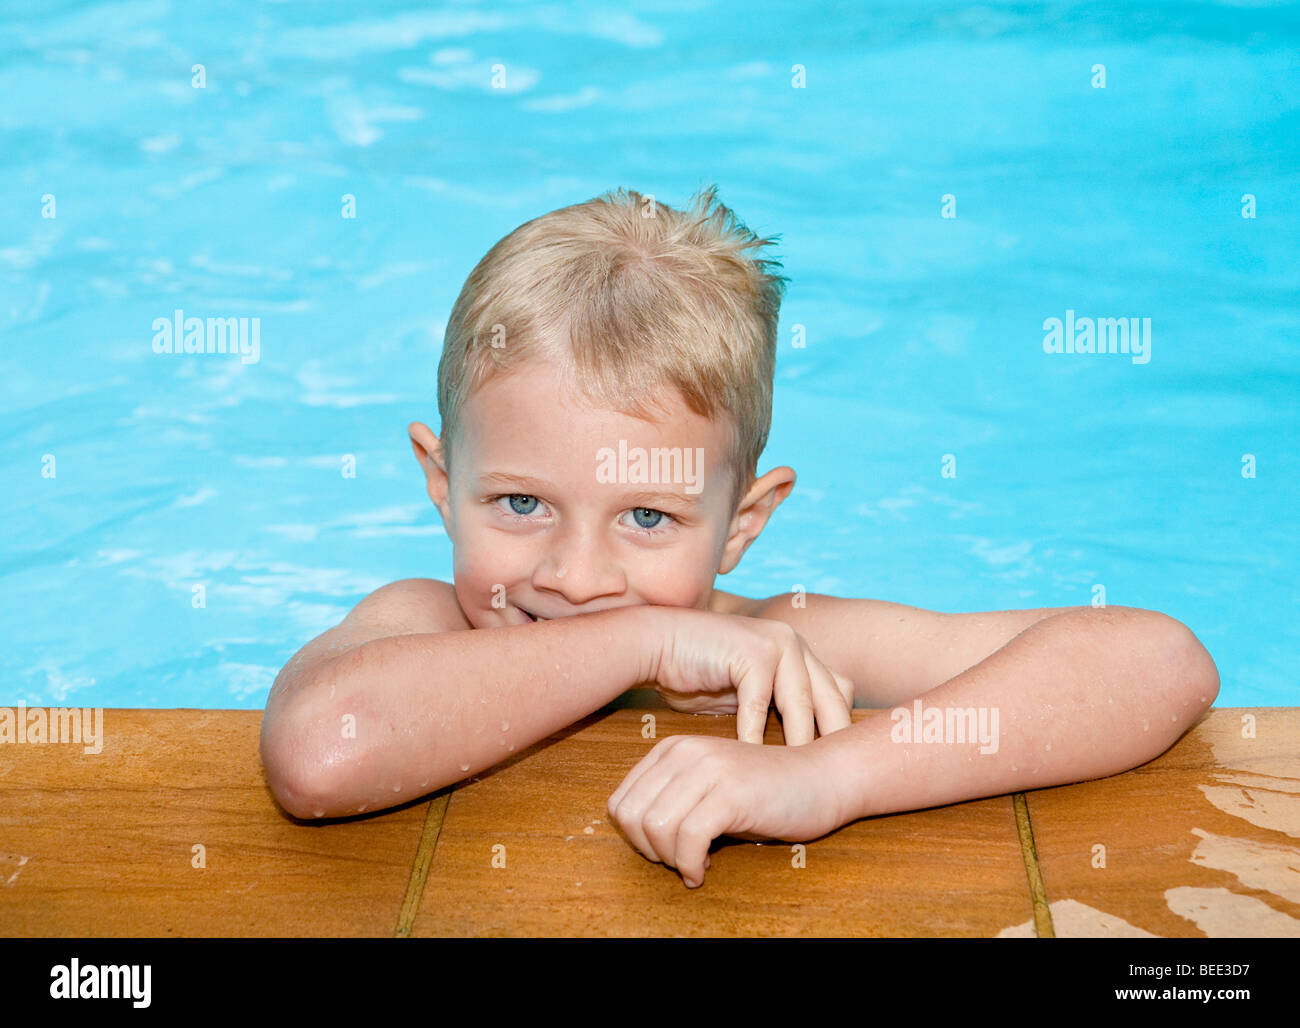 5-8888year-old boy in a swimming pool - Stock Image